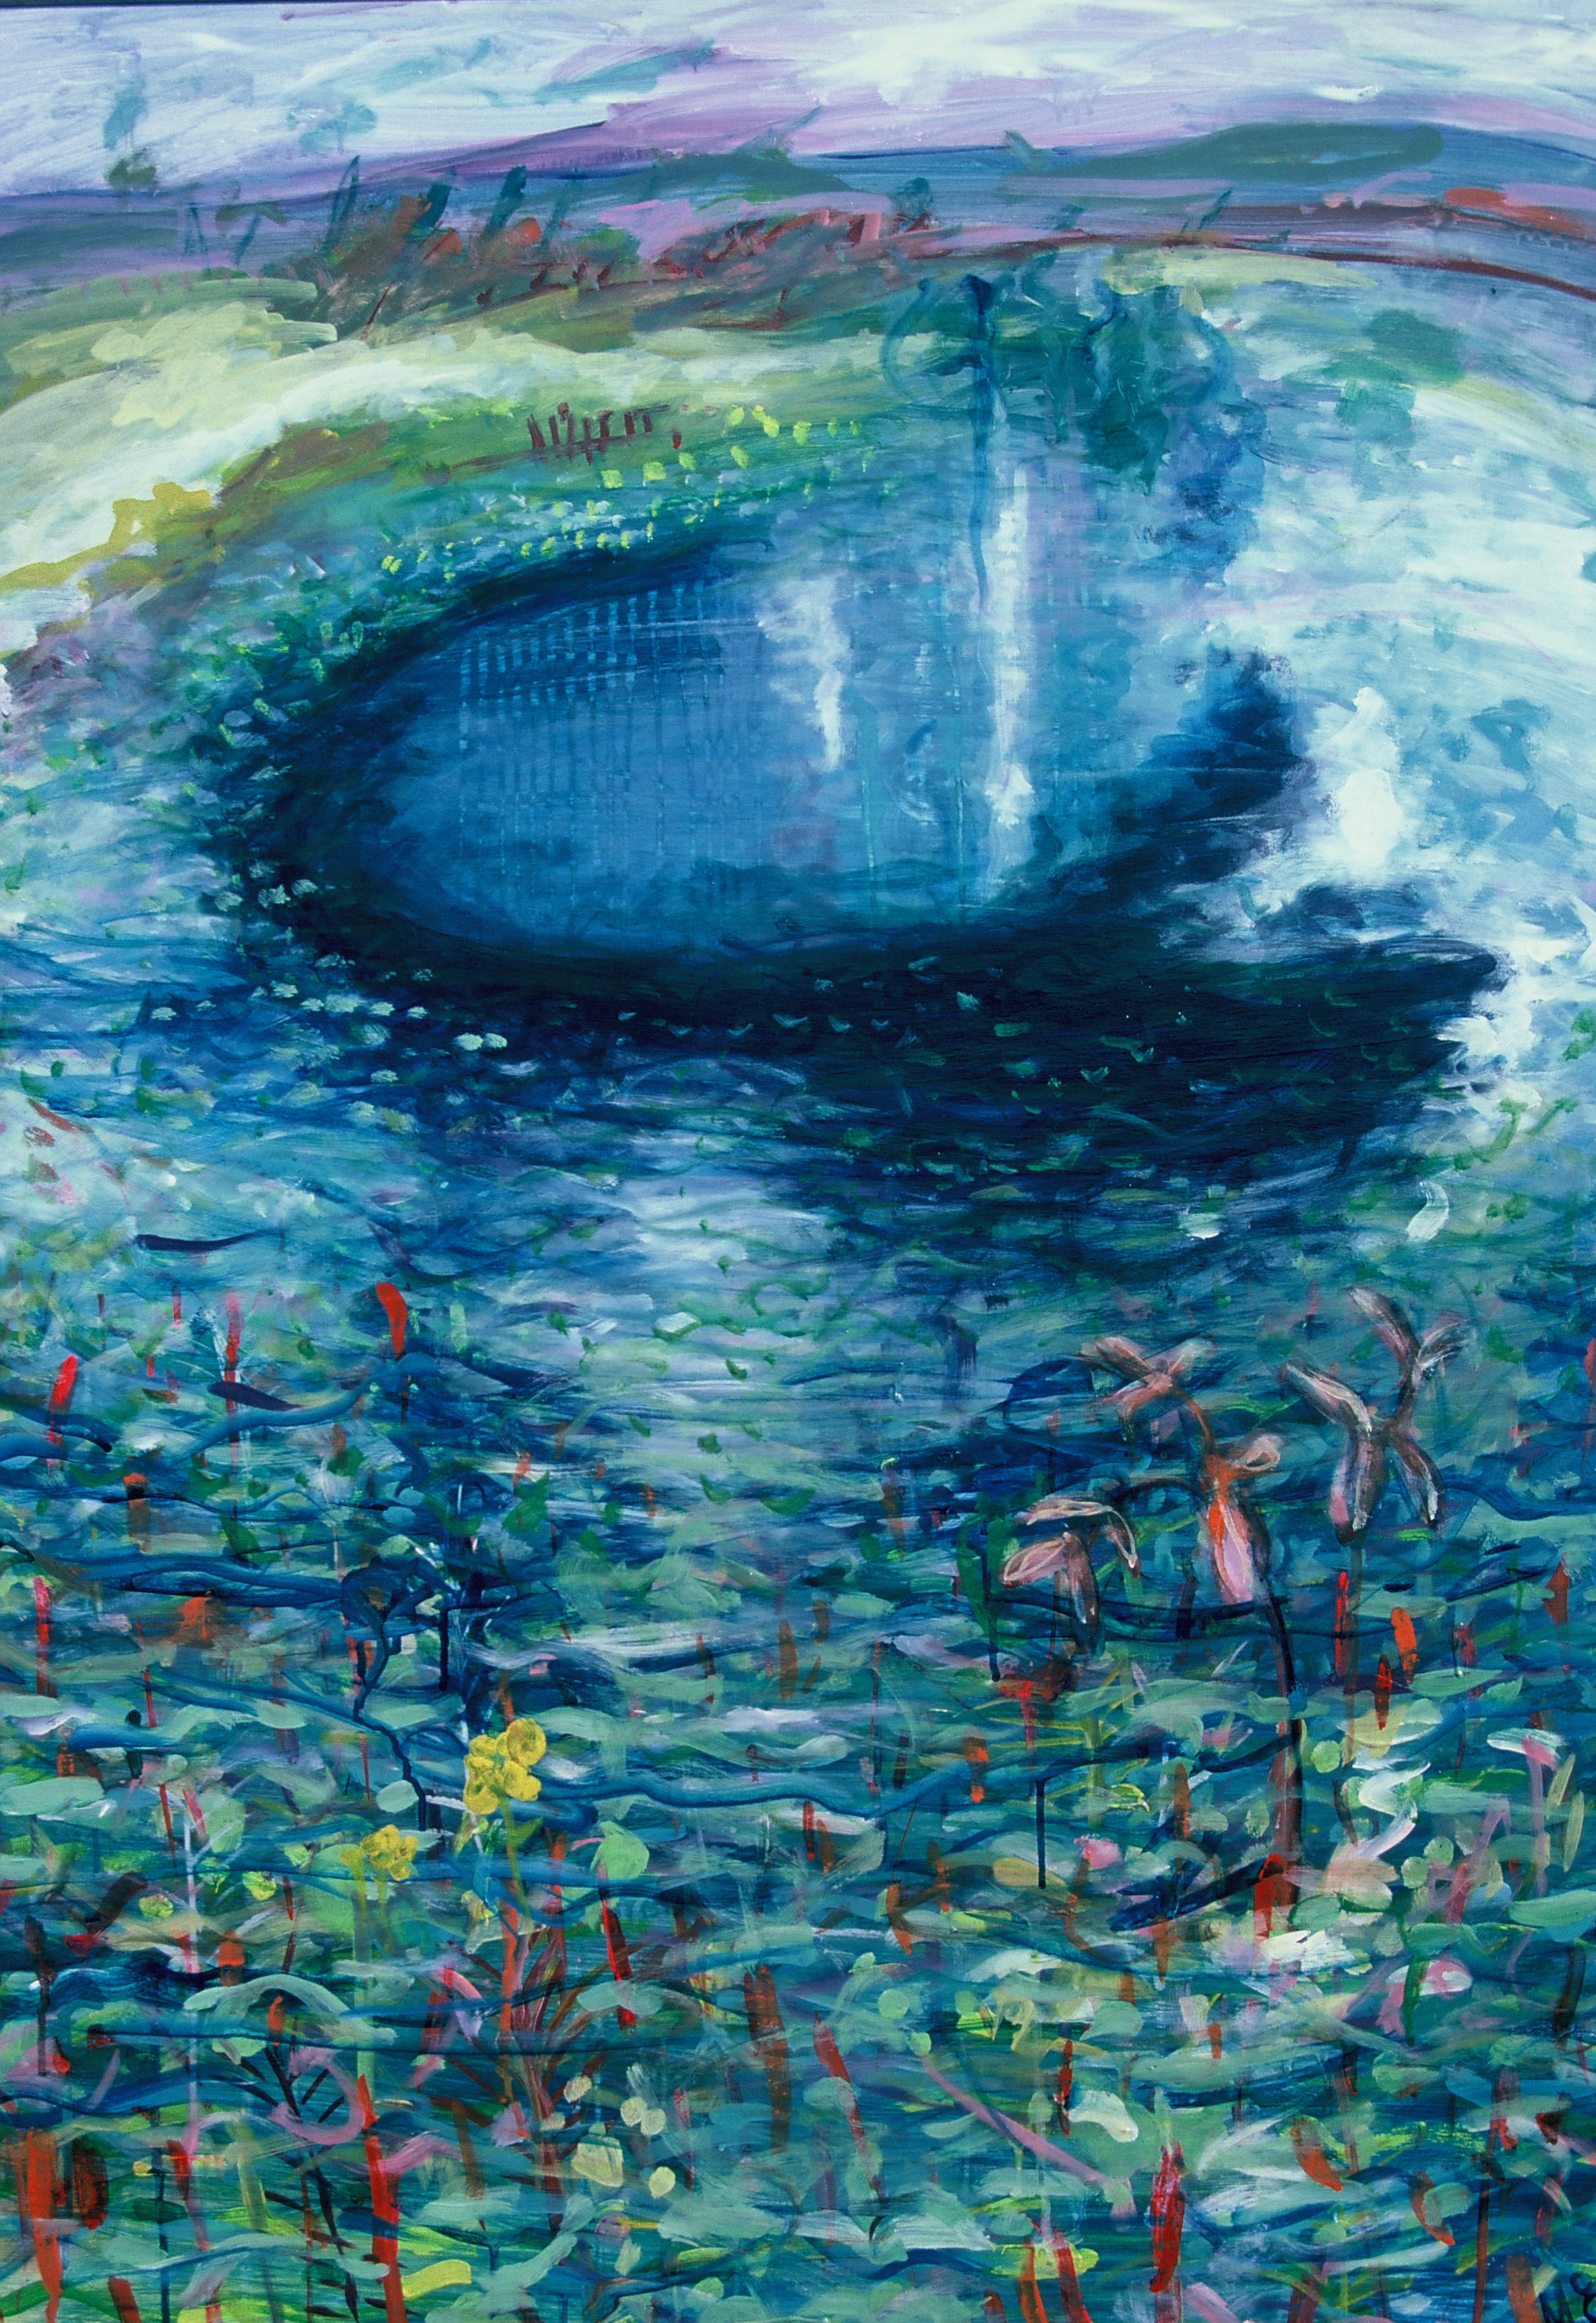 Reed Song after Monet 1987